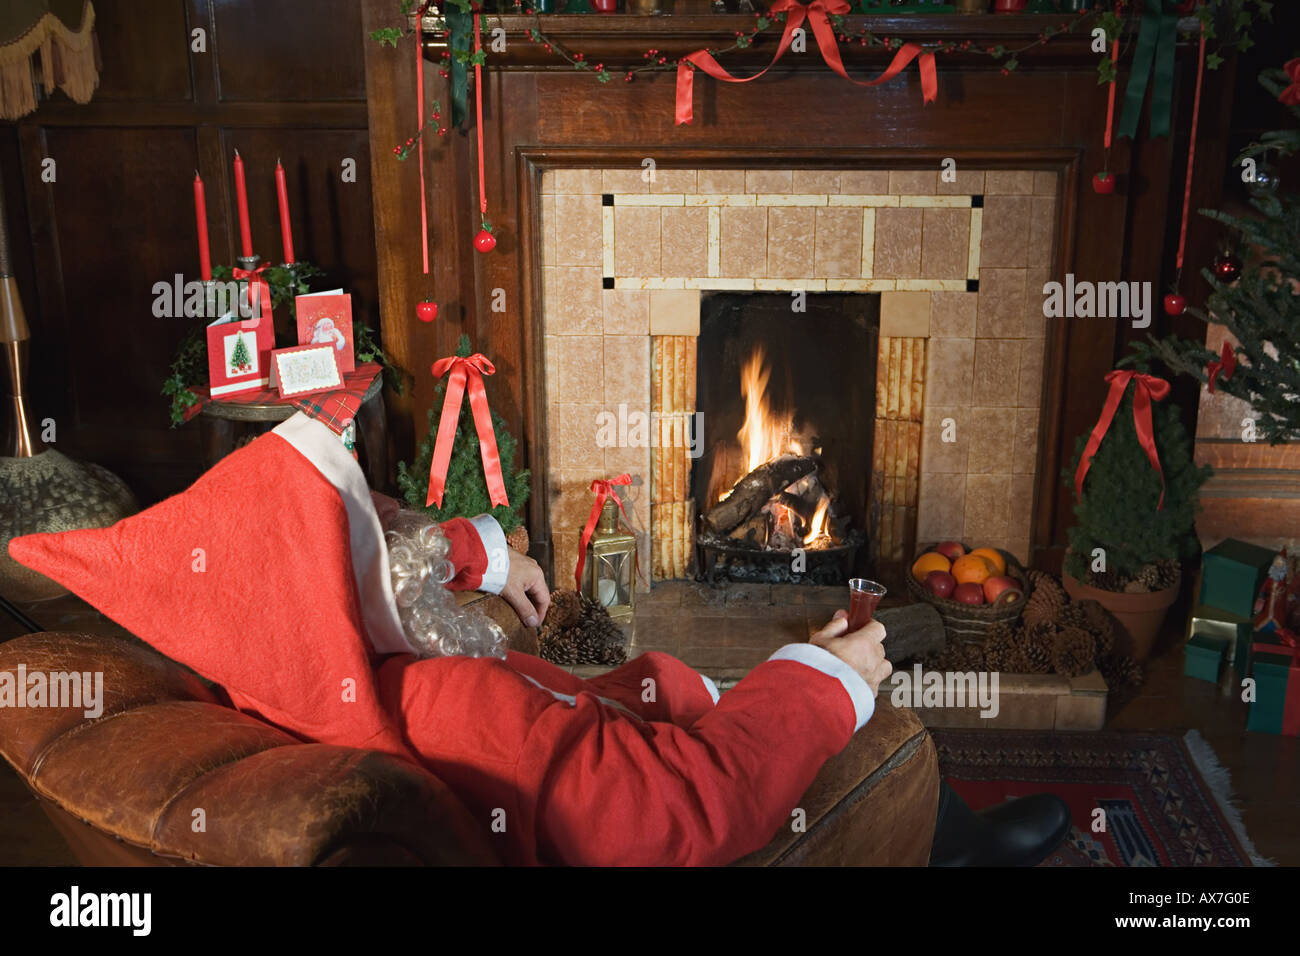 Santa claus drinking sherry by the fire - Stock Image